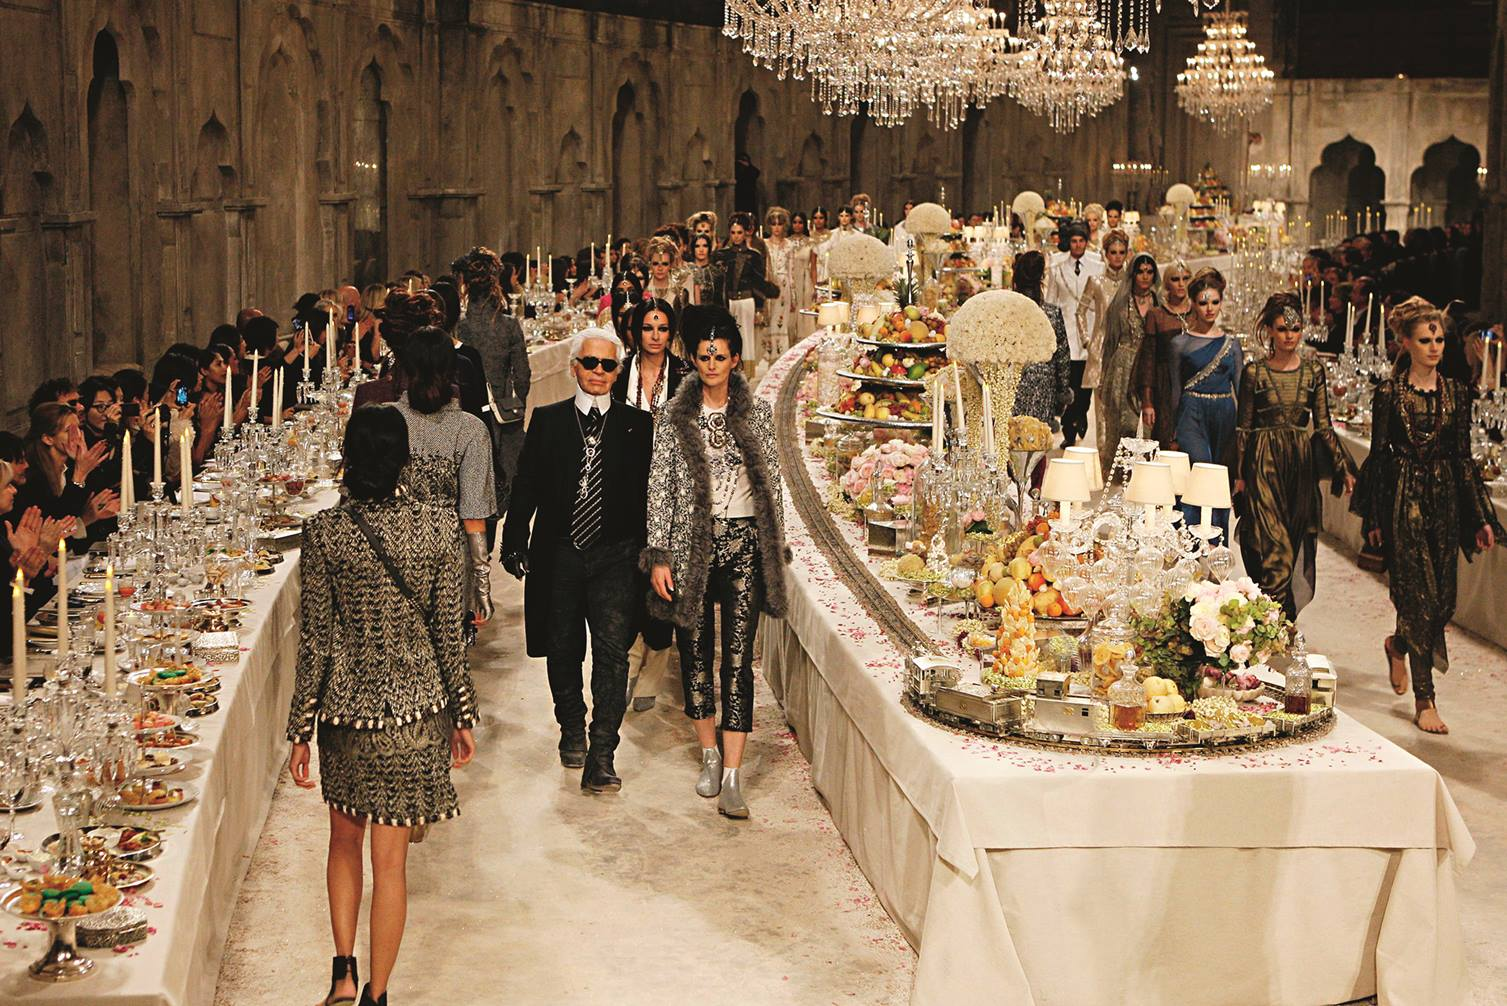 Bombay Dreaming: Karl Lagerfeld's Chanel 'Paris-Bombay' Métiers d'Art Collection